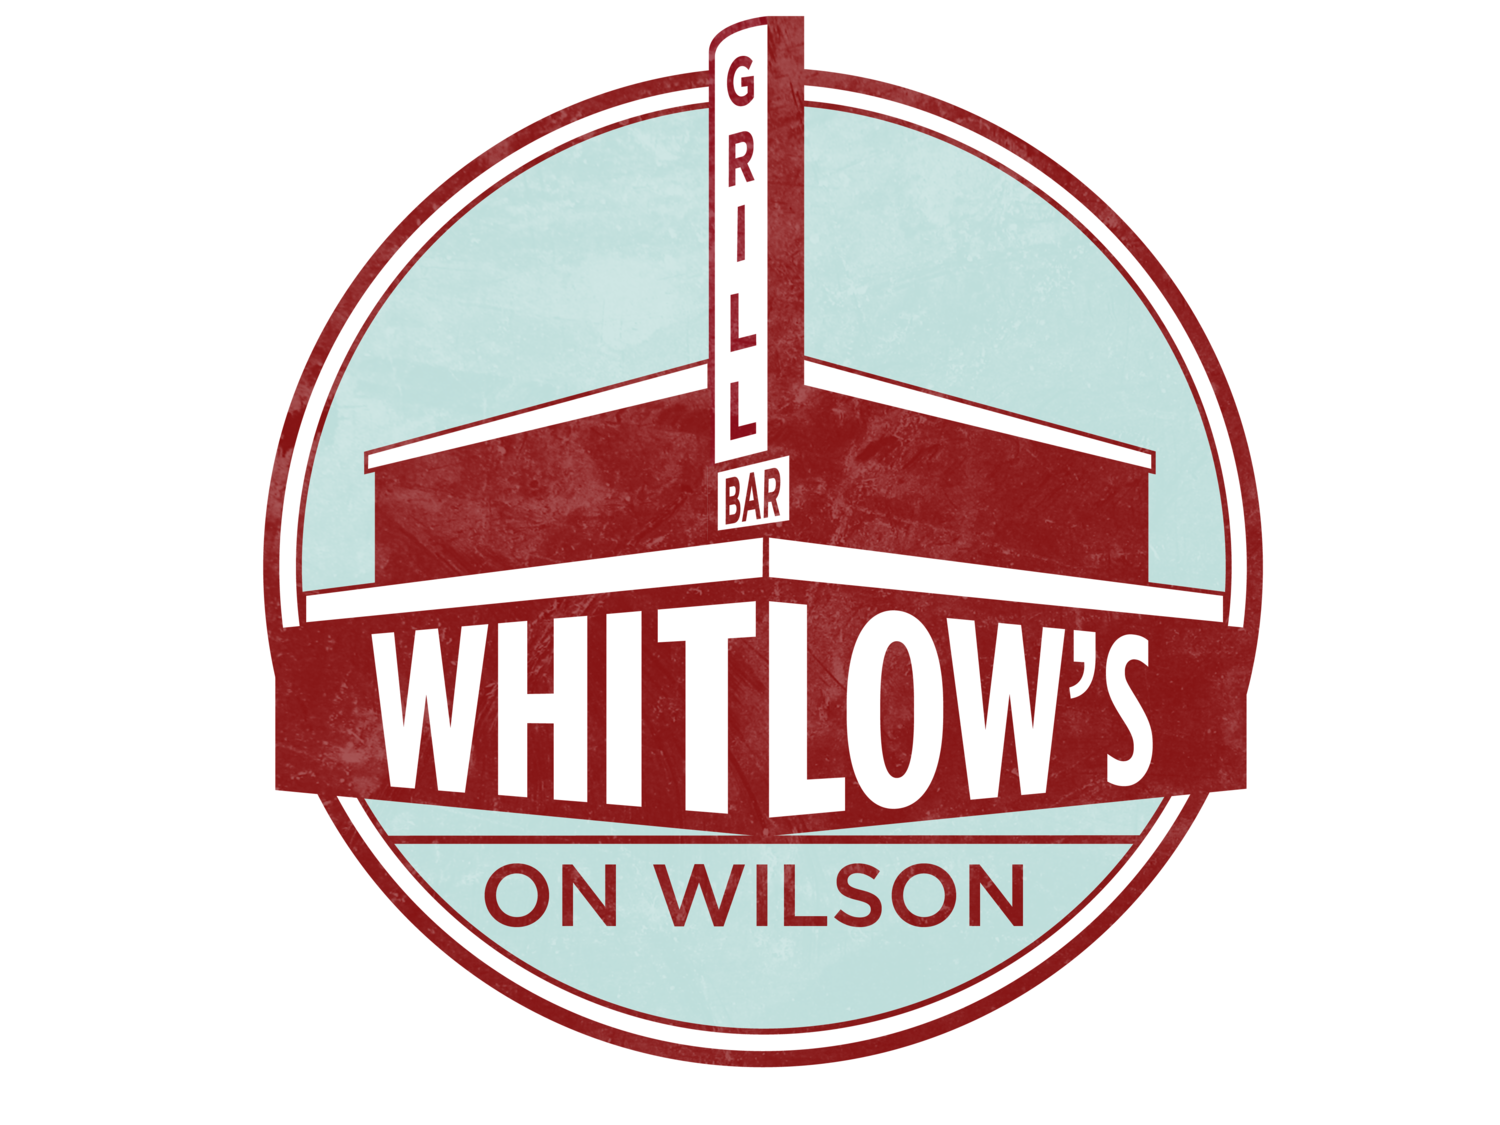 whitlow-s